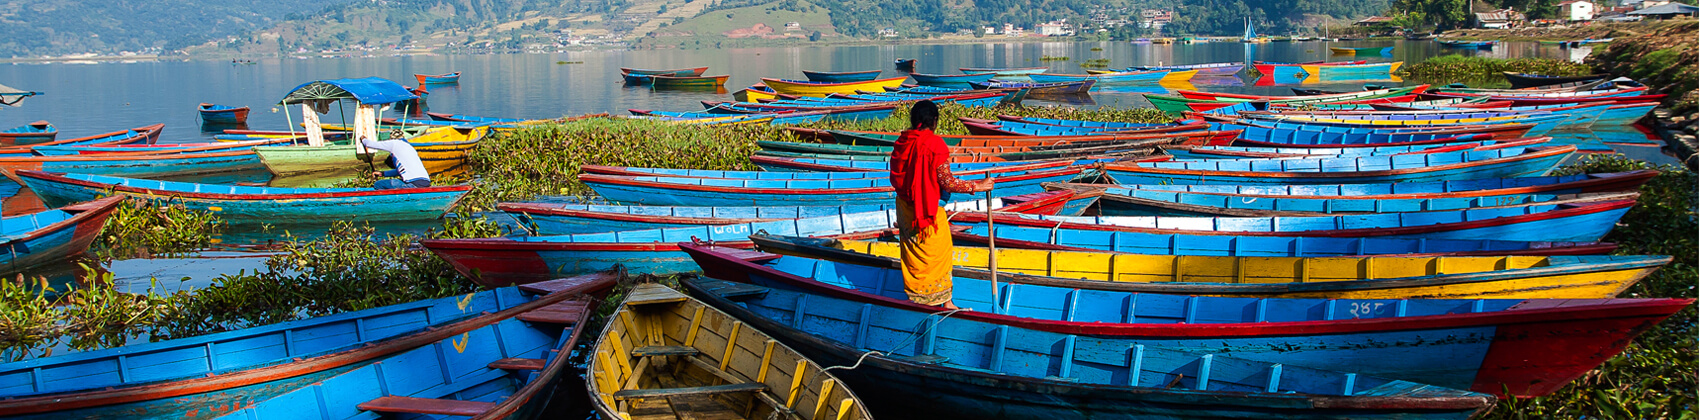 Travel Packages: Kathmandu - Pokhara